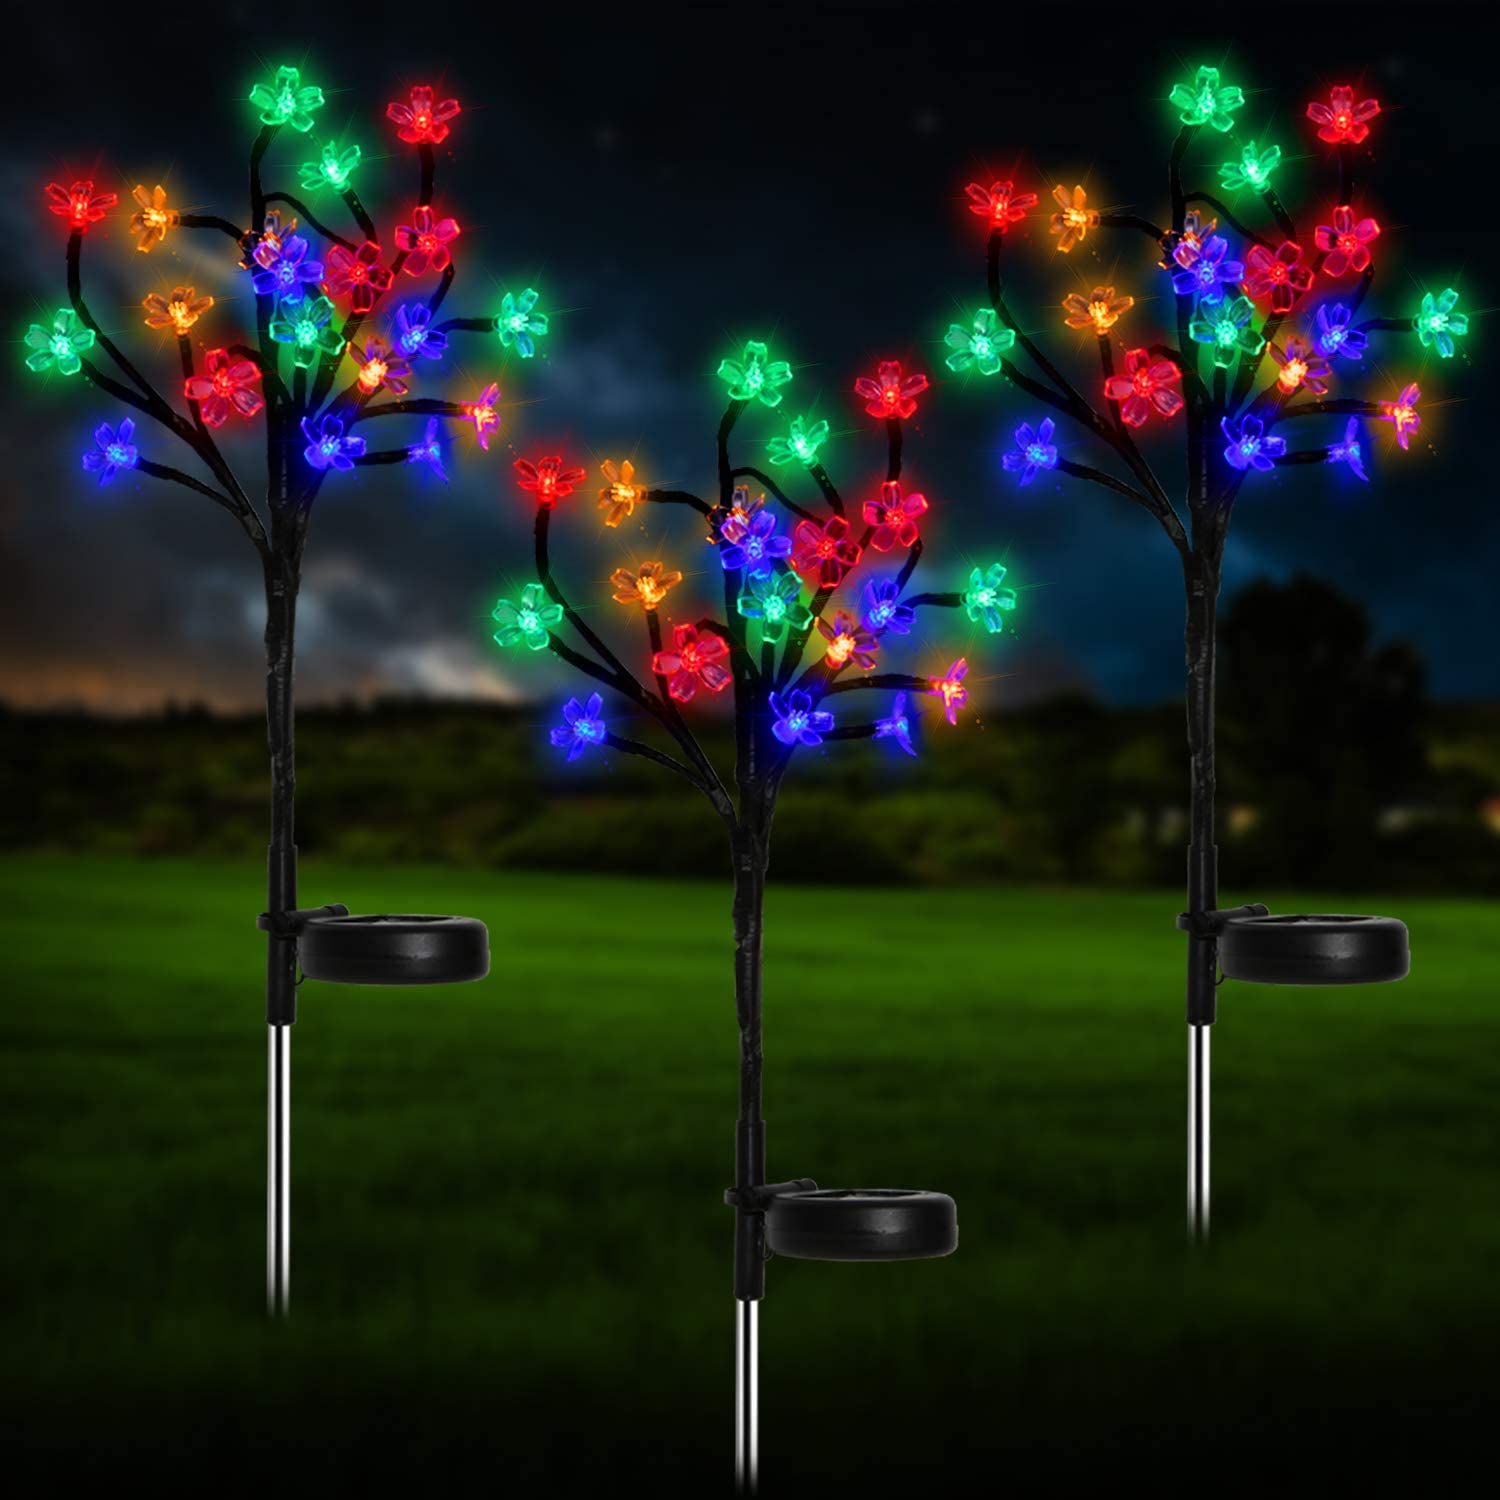 Beinhome Solar Garden Lights Outdoor Decorative 3 Pack Colorful LED Solar Powered Peach Flower Landscape Stake Lights for Yard Pathway Deck Patio Party Christmas